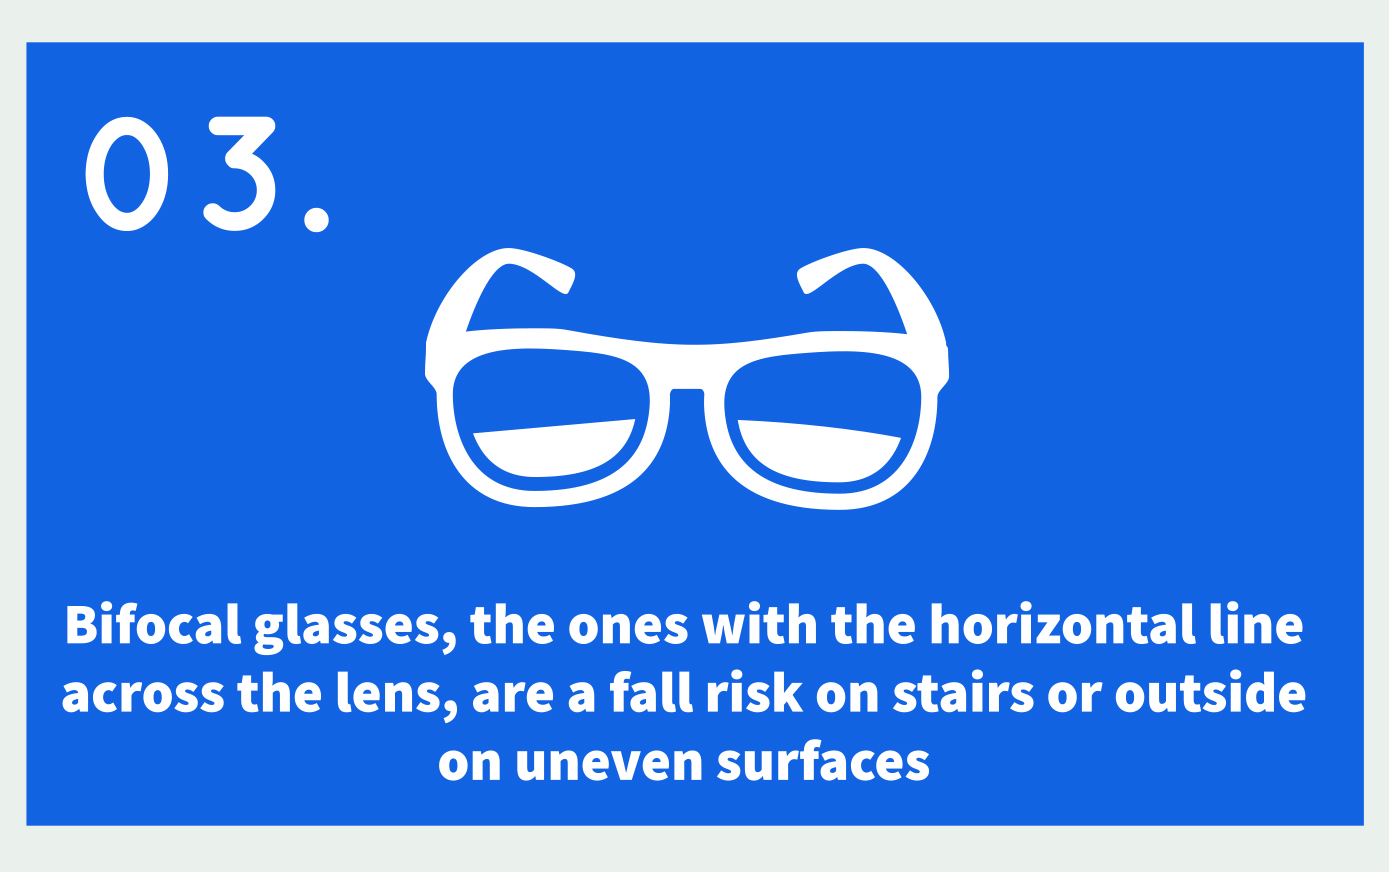 03. Icon: Bifocals Text: Bifocal glasses, the ones with the horizontal line across the lens, are a fall risk on stairs or outside on uneven surfaces